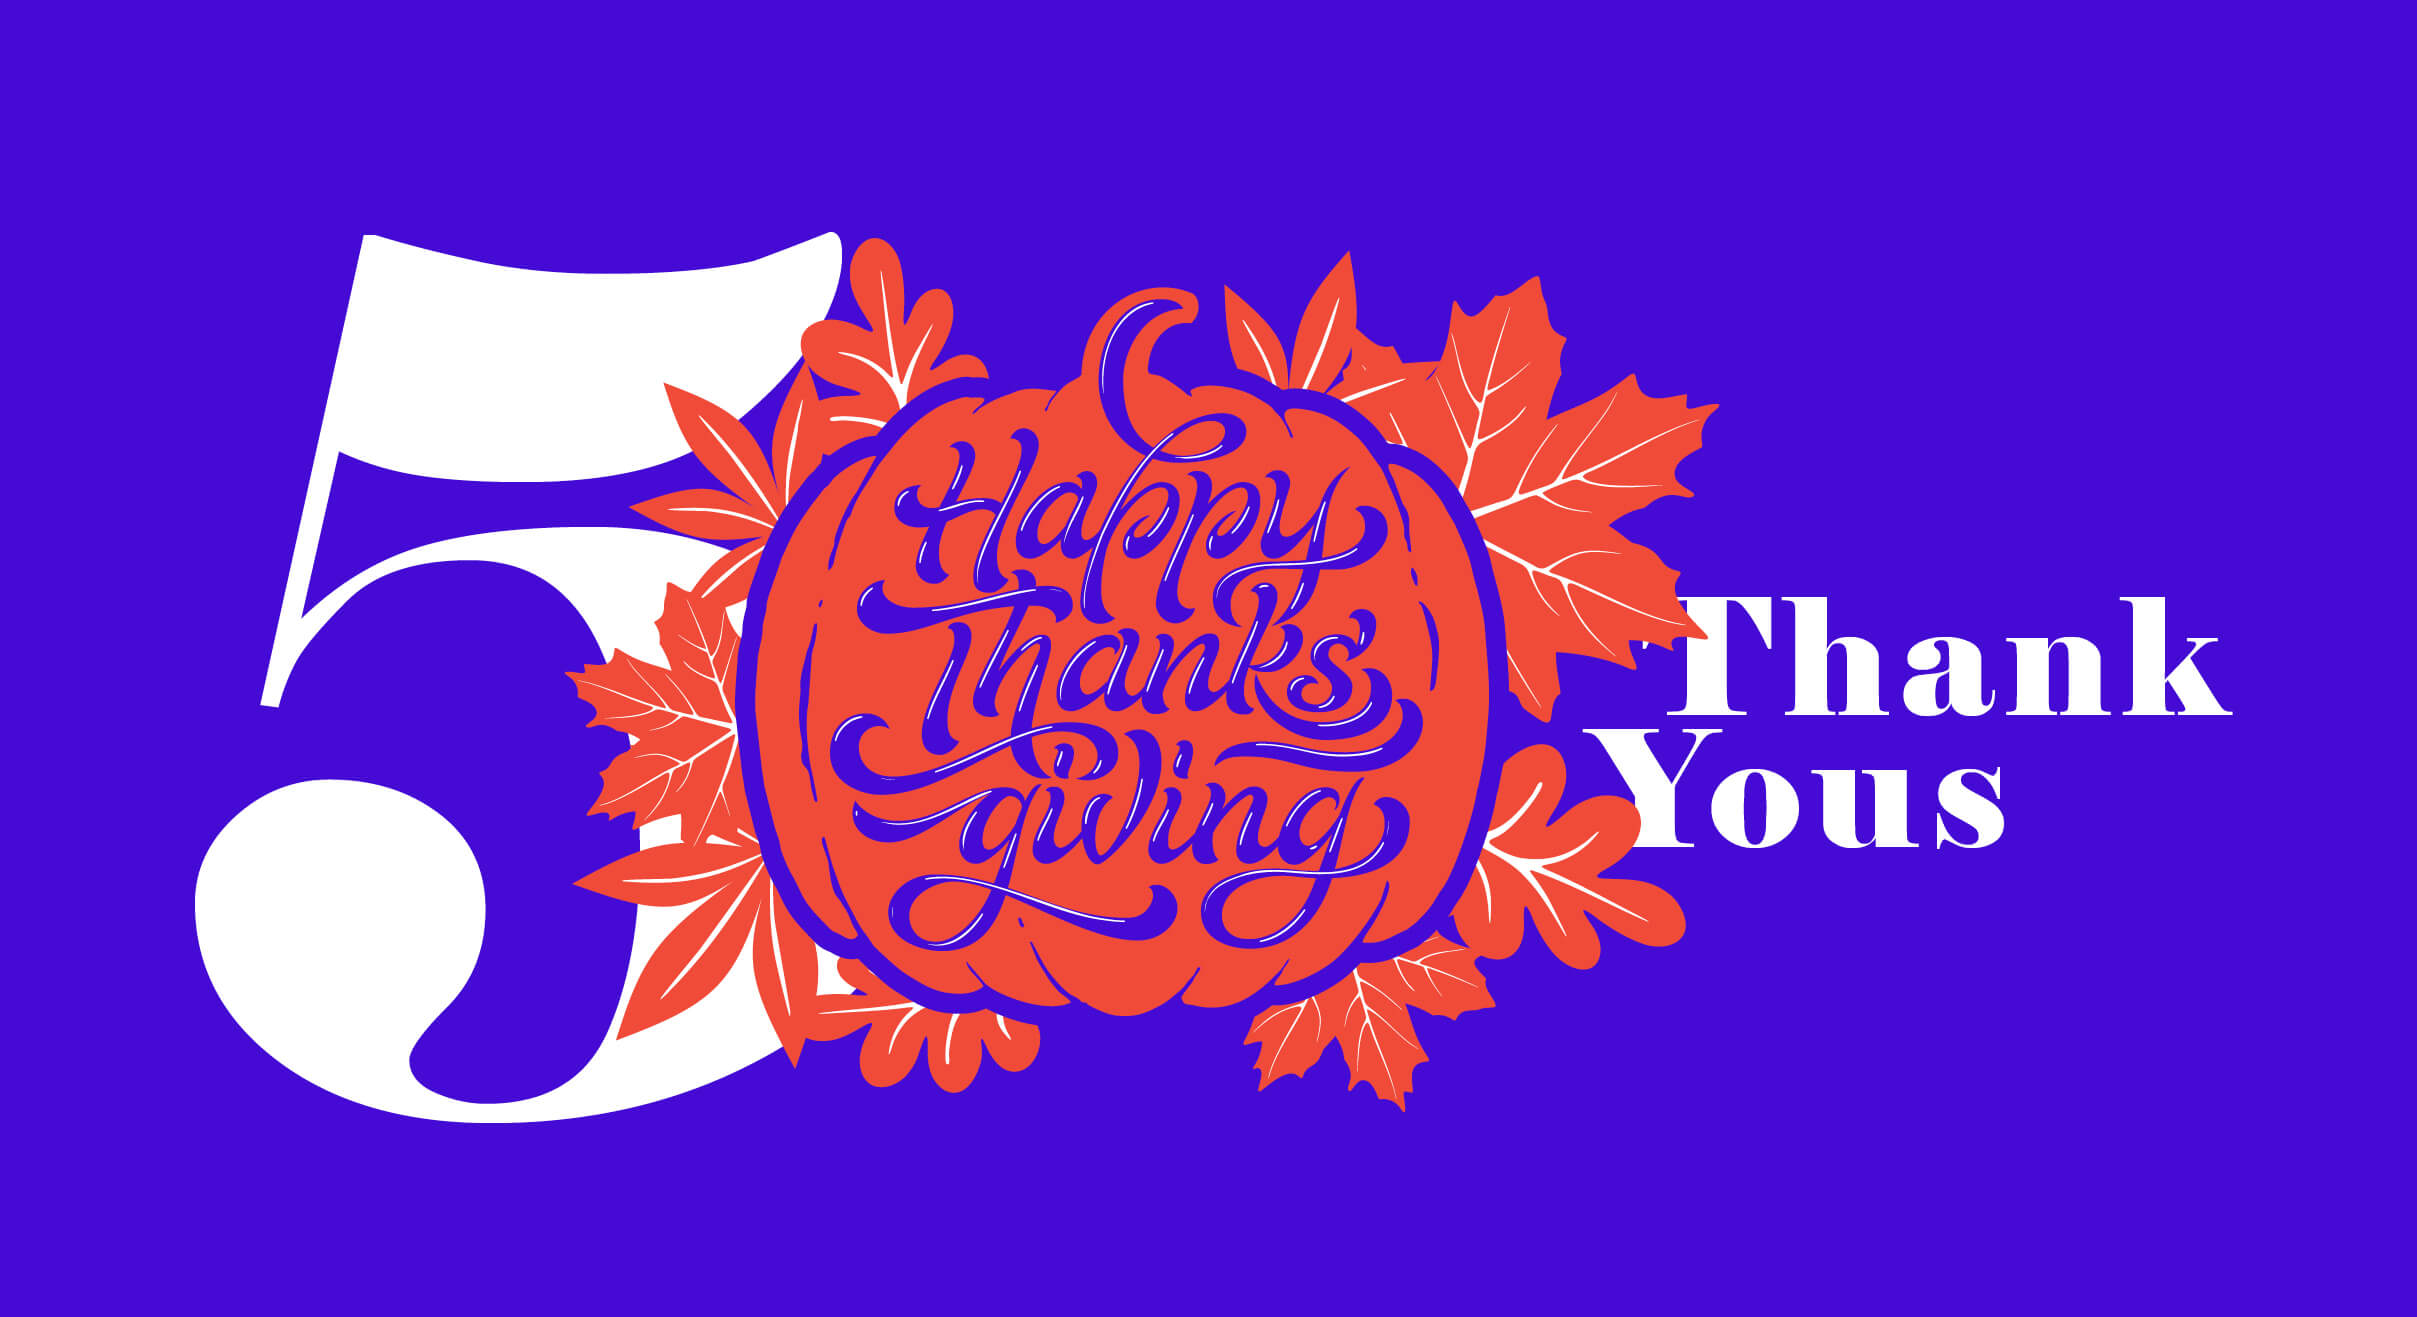 5-thank-yous-for-this-thanksgiving-season-at-cloudshare